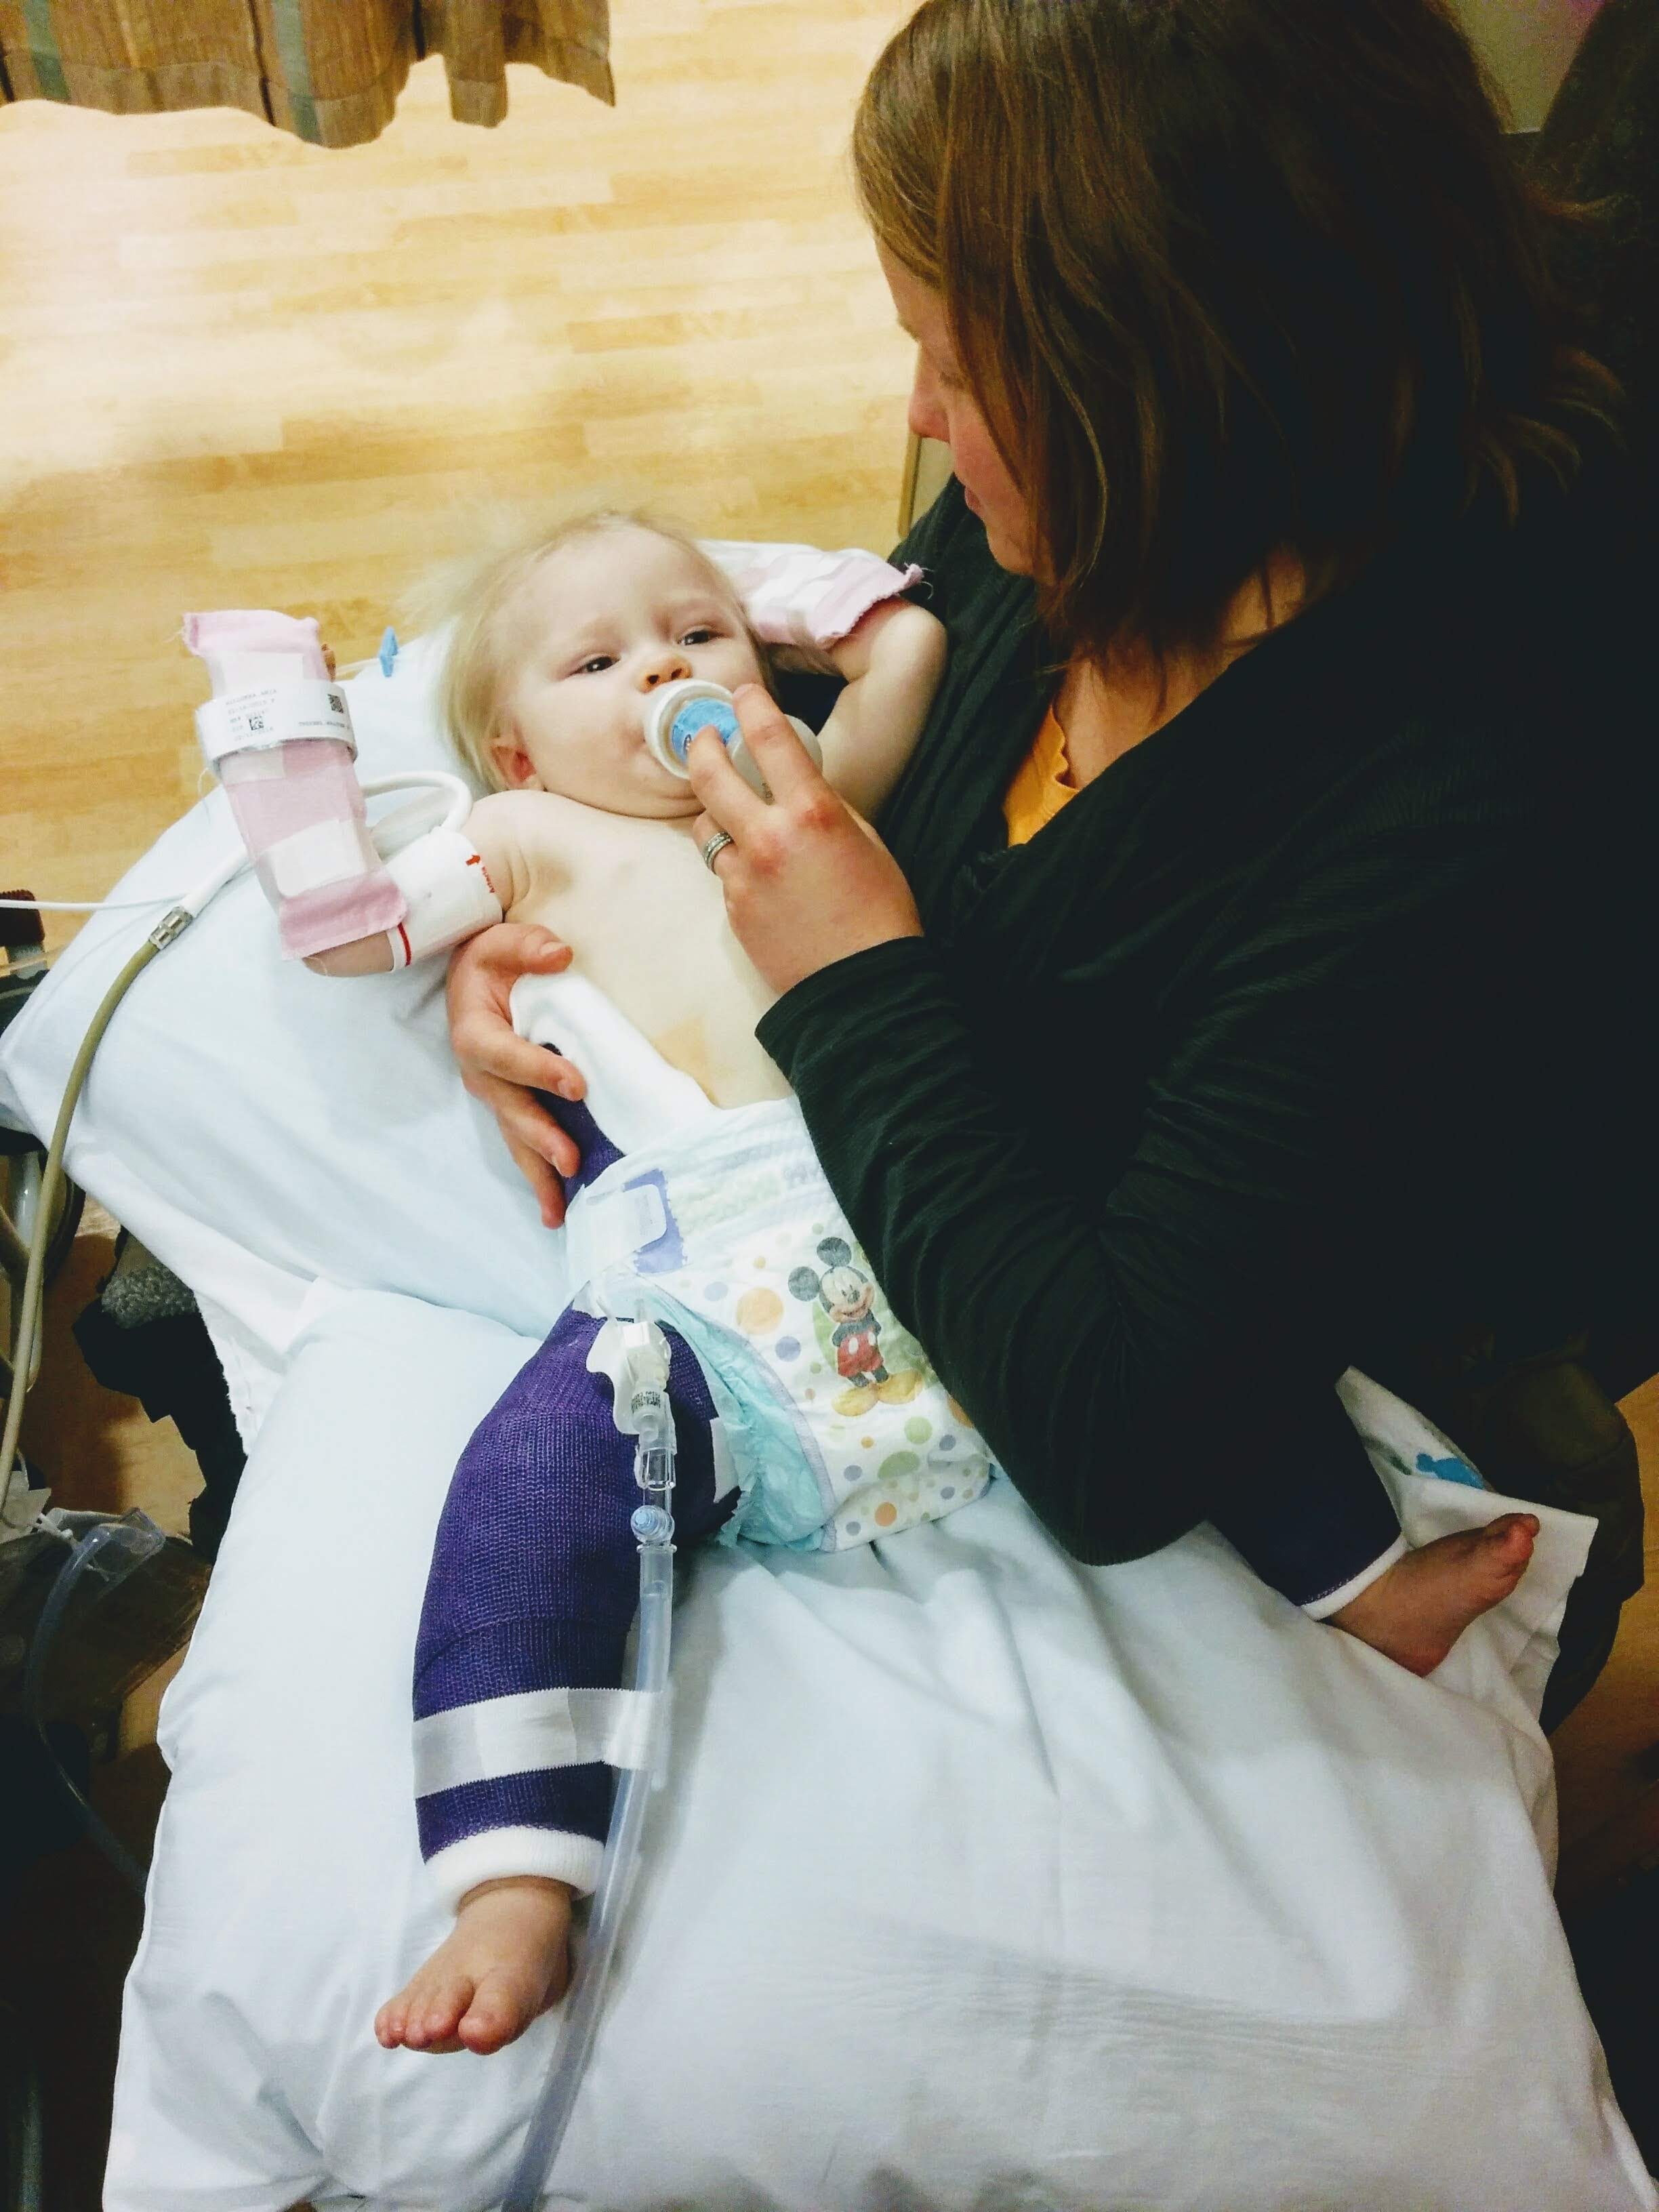 Aria had hip surgery for hip-dsyplasia 3 months before she died. This was right after she woke up from surgery, she just wanted her mom <3